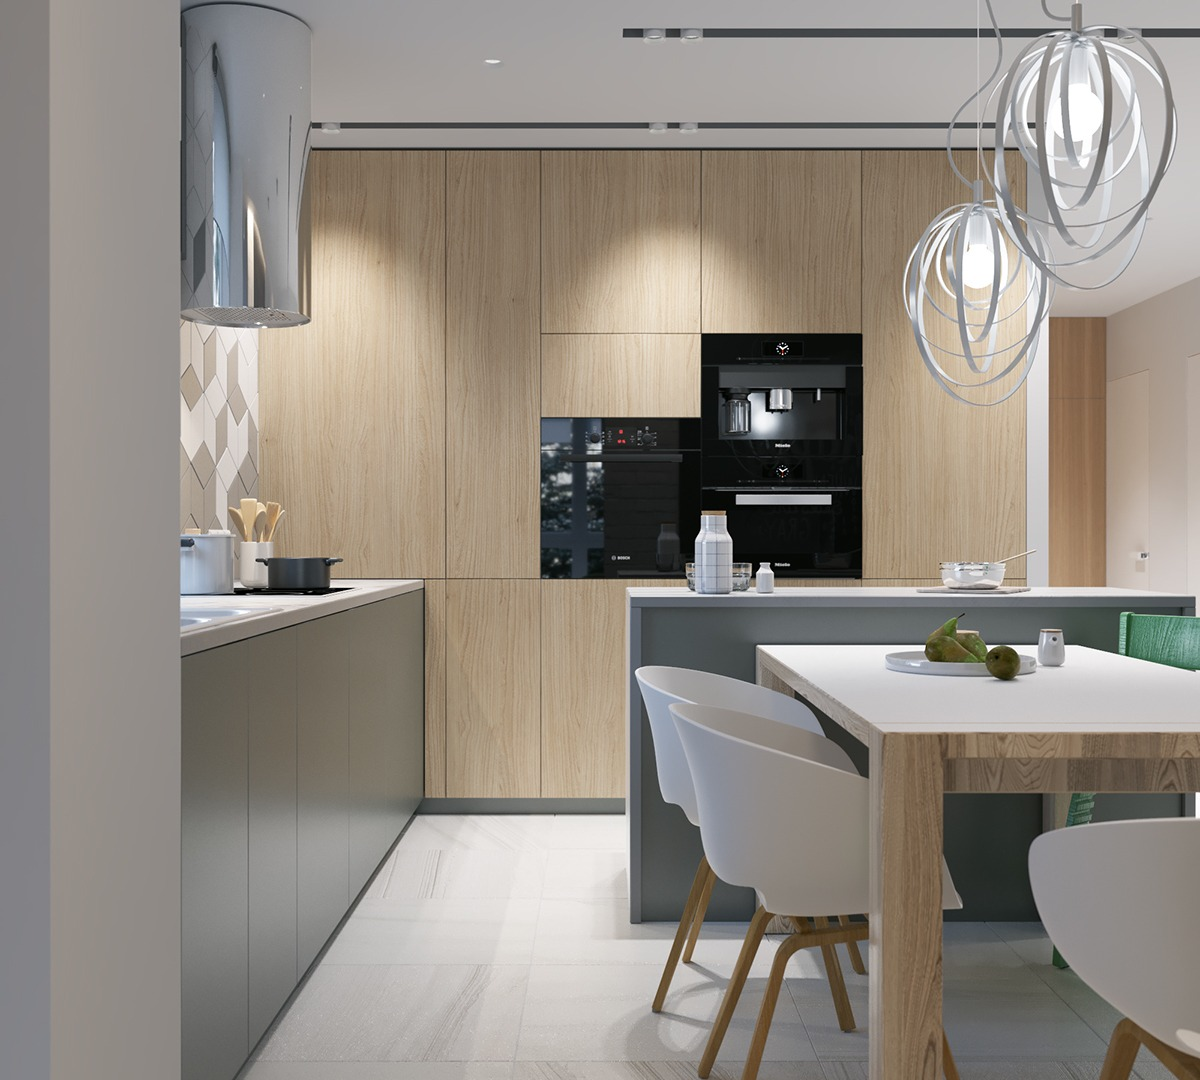 Built In Appliances Wooden Cabinets - 2 stunningly beautiful homes decorated in modern scandinavian style